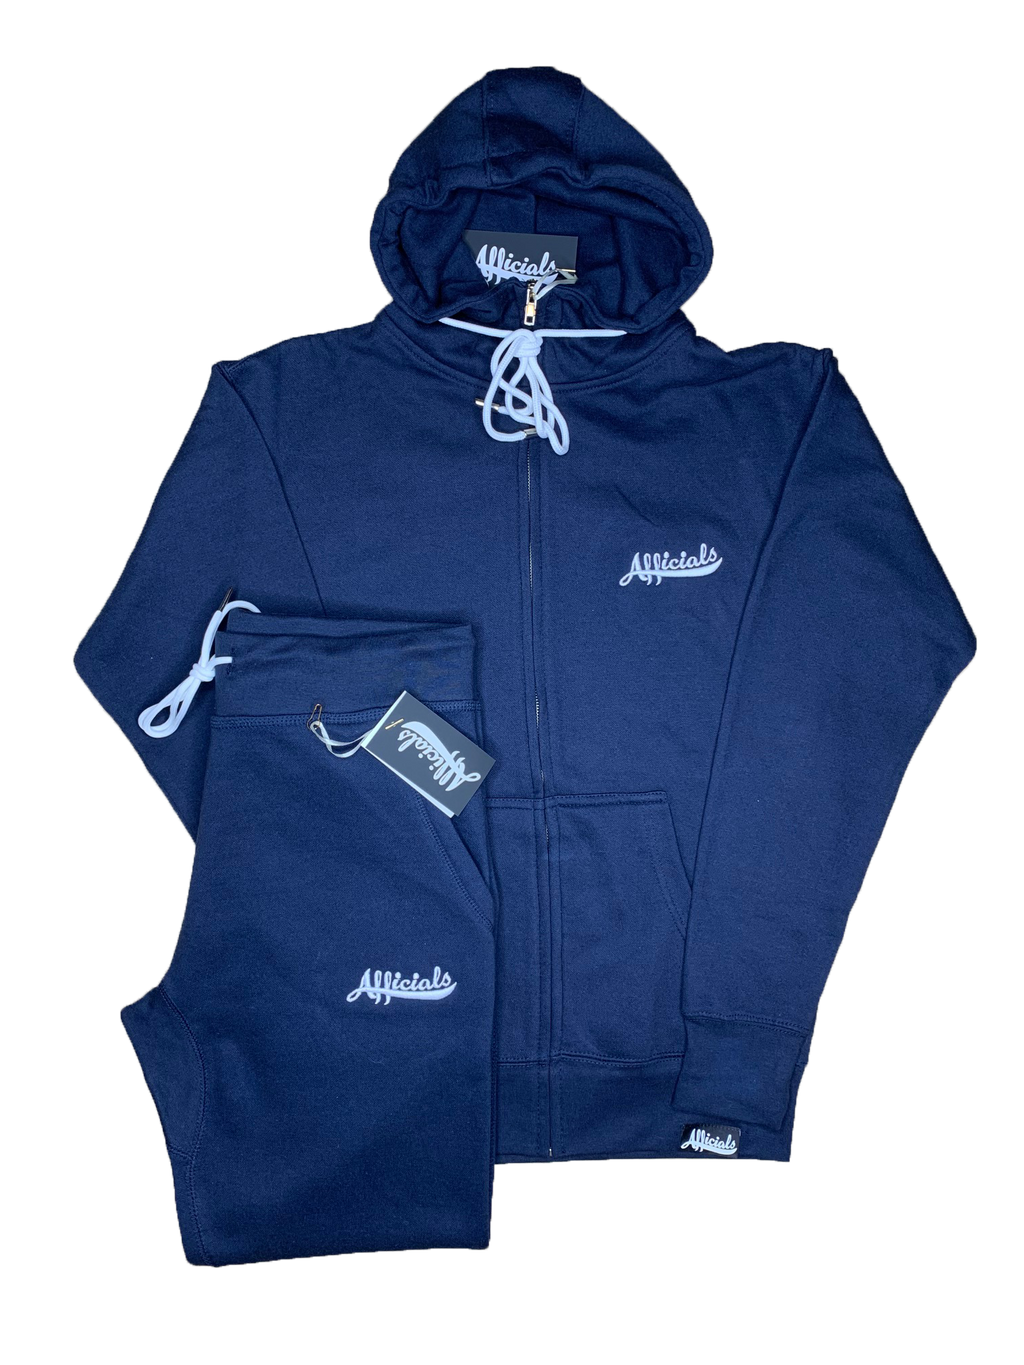 Afficials Sweatsuit Set NAVY/WHITE [Embroidered]